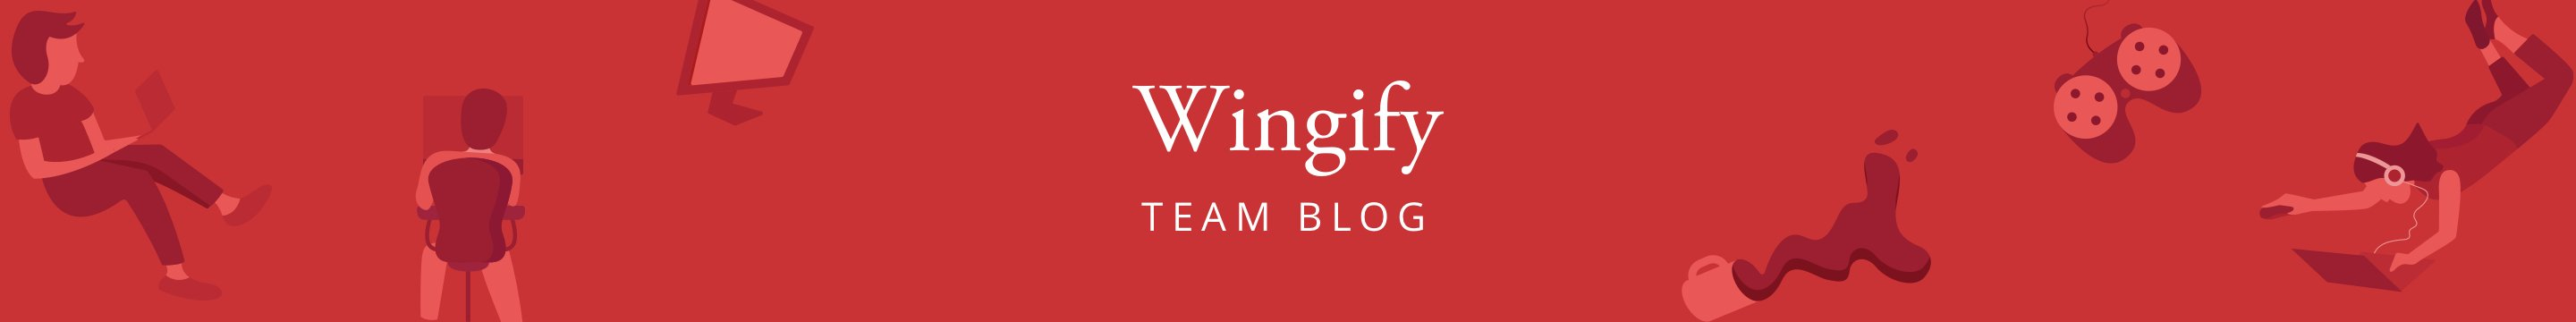 Wingify Team Blog